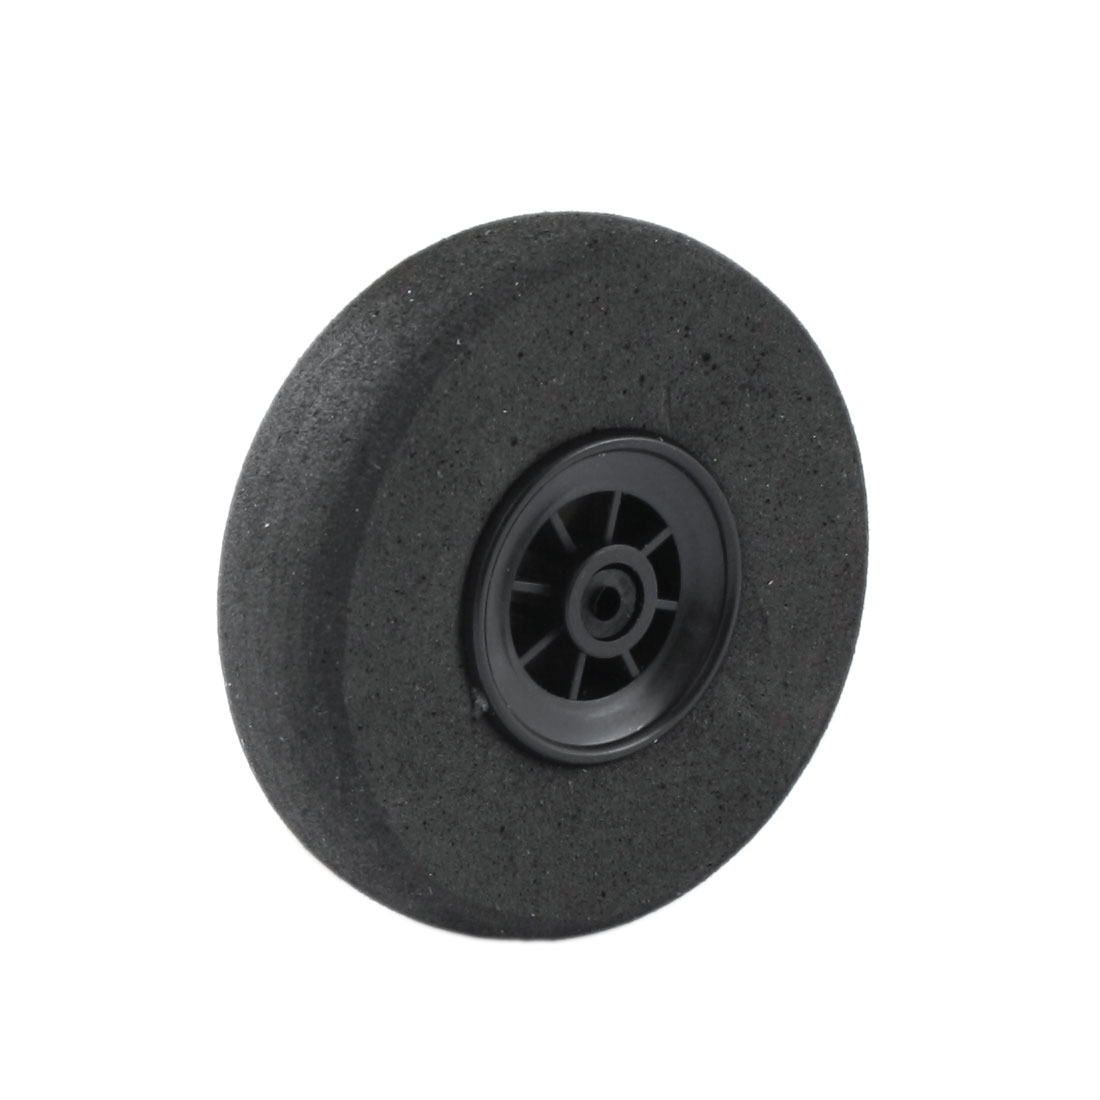 Black Foam Wheel 40mm Dia Spare Part for RC Aircraft Model Toy